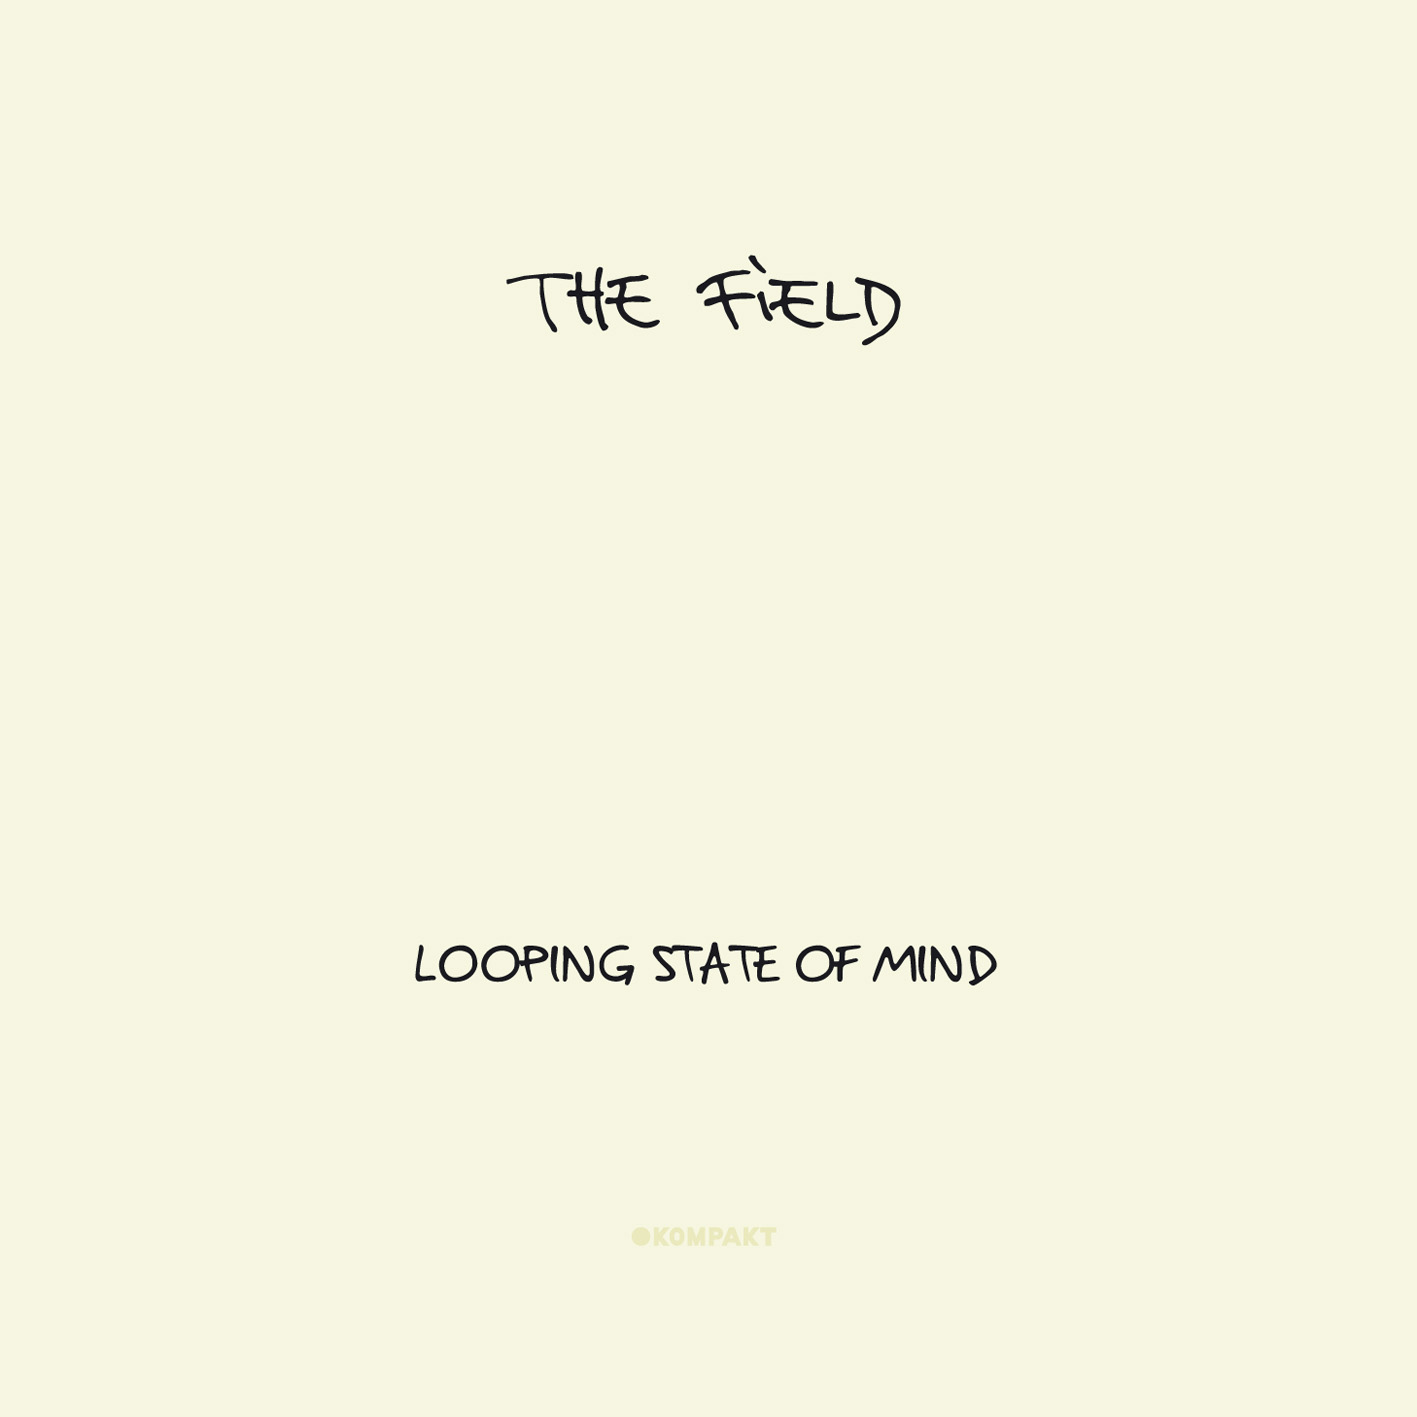 THE FIELD Looping State Of Mind art